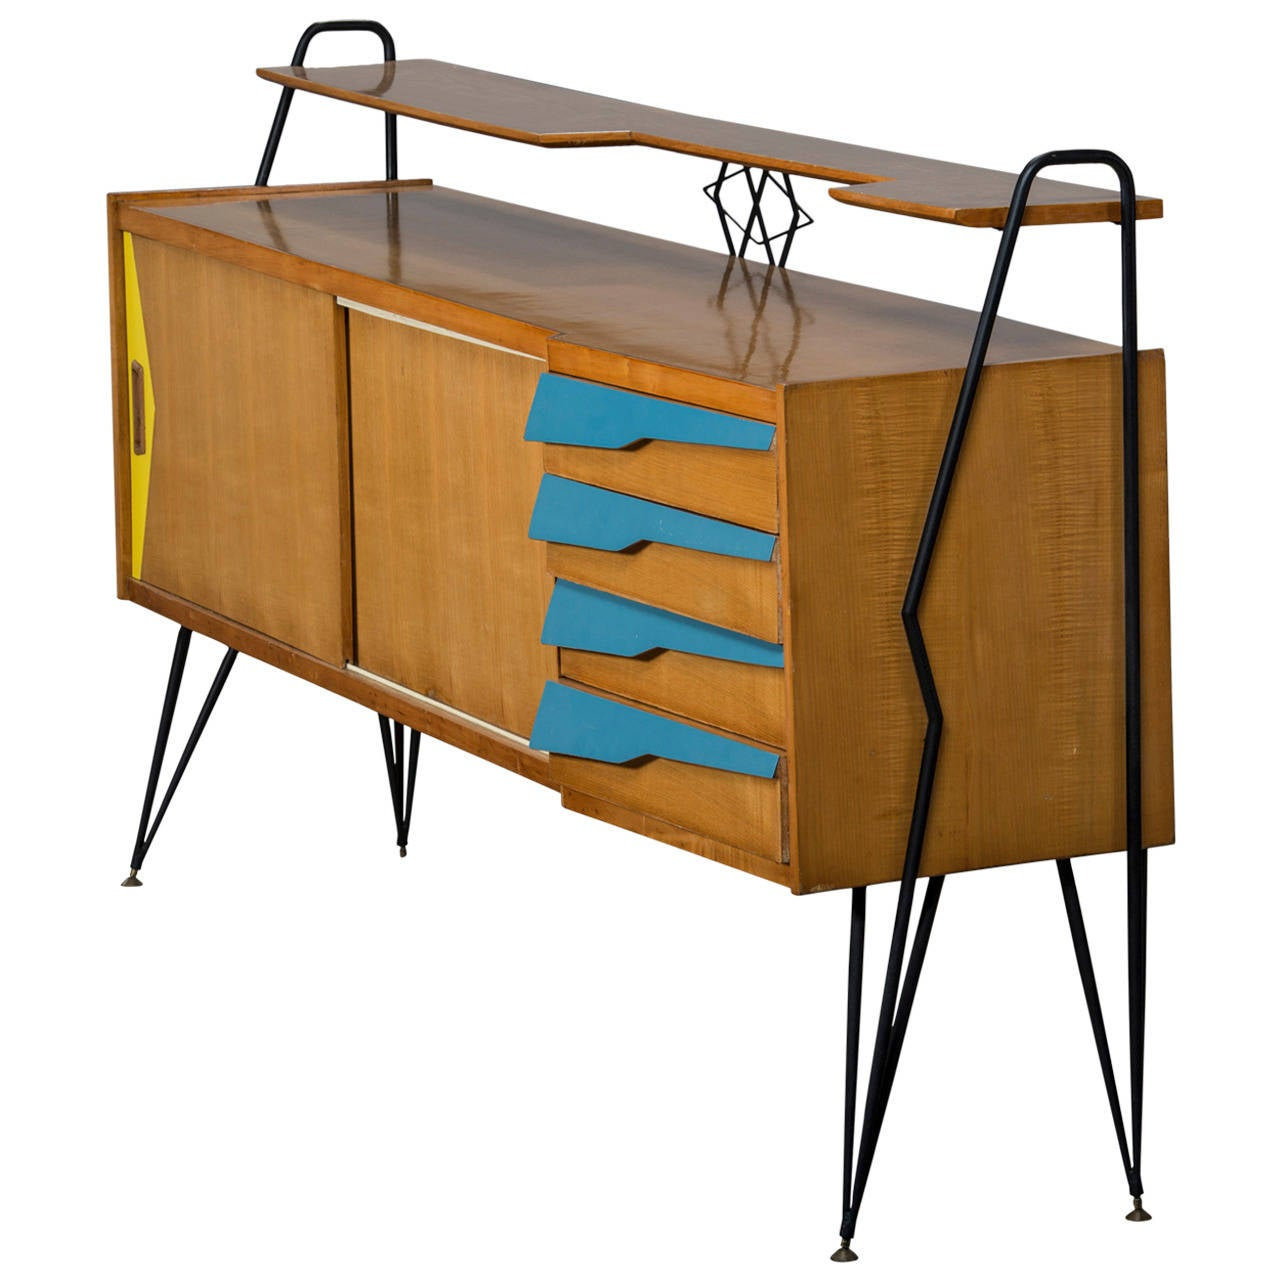 Italian sideboard mid 20th century for sale at 1stdibs for Mid 20th century furniture